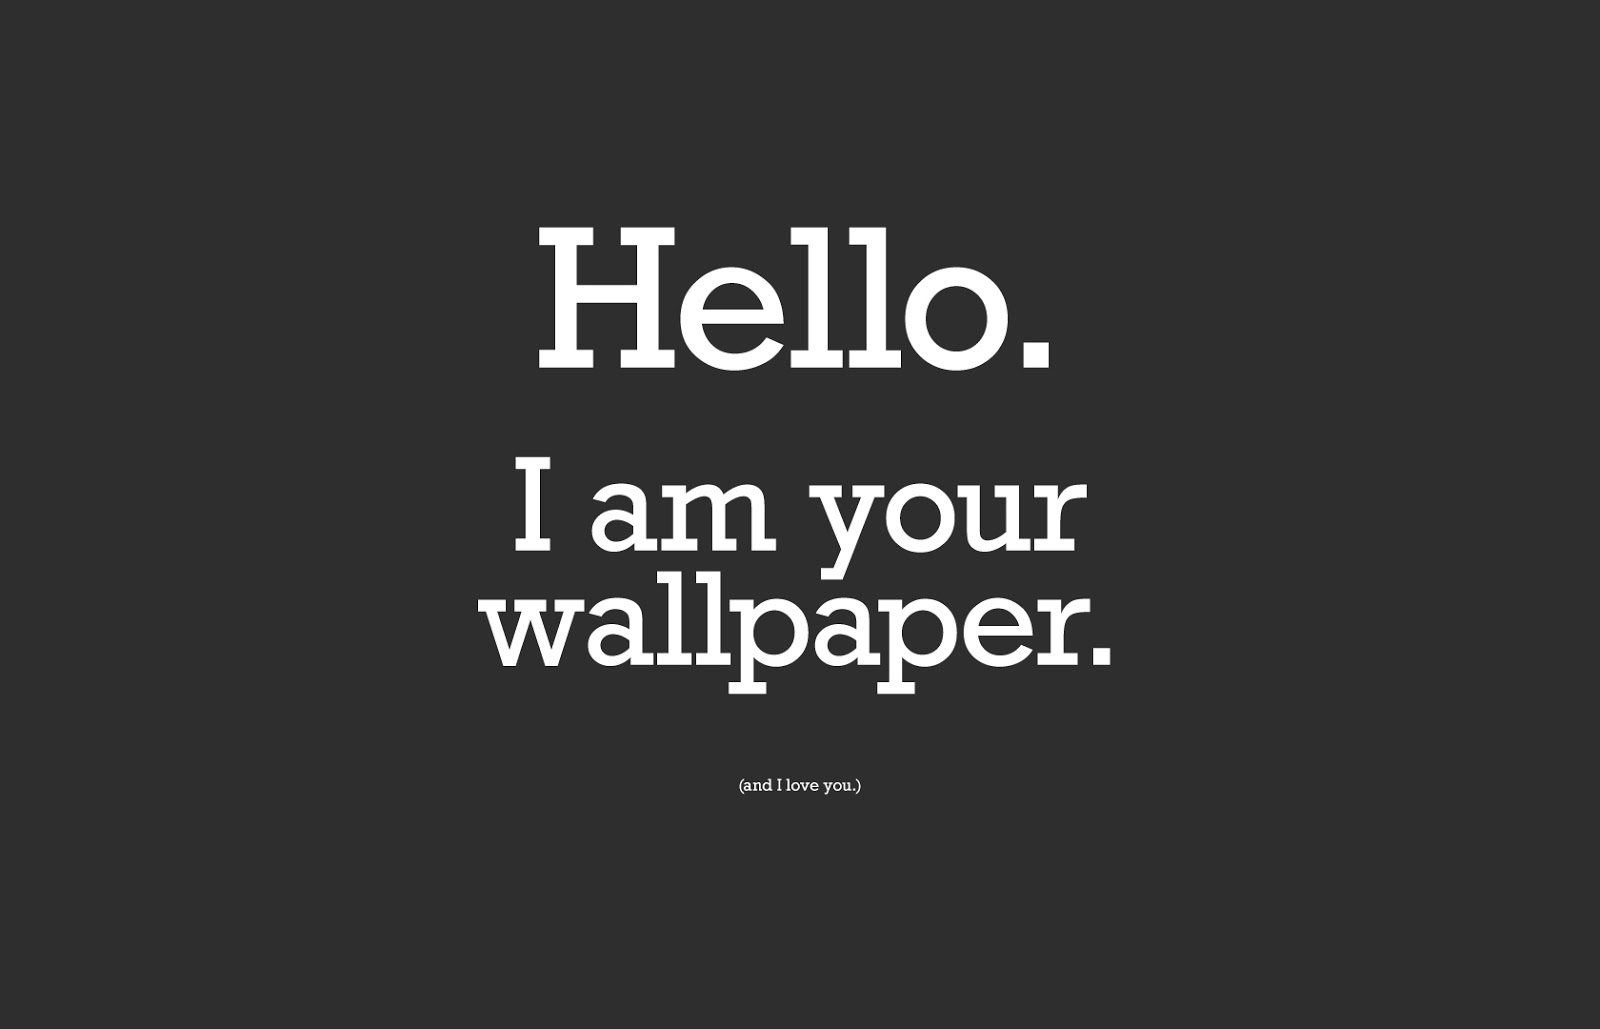 Funny Weird Quotes And Sayings 27 Desktop Background - Funnypicture ...